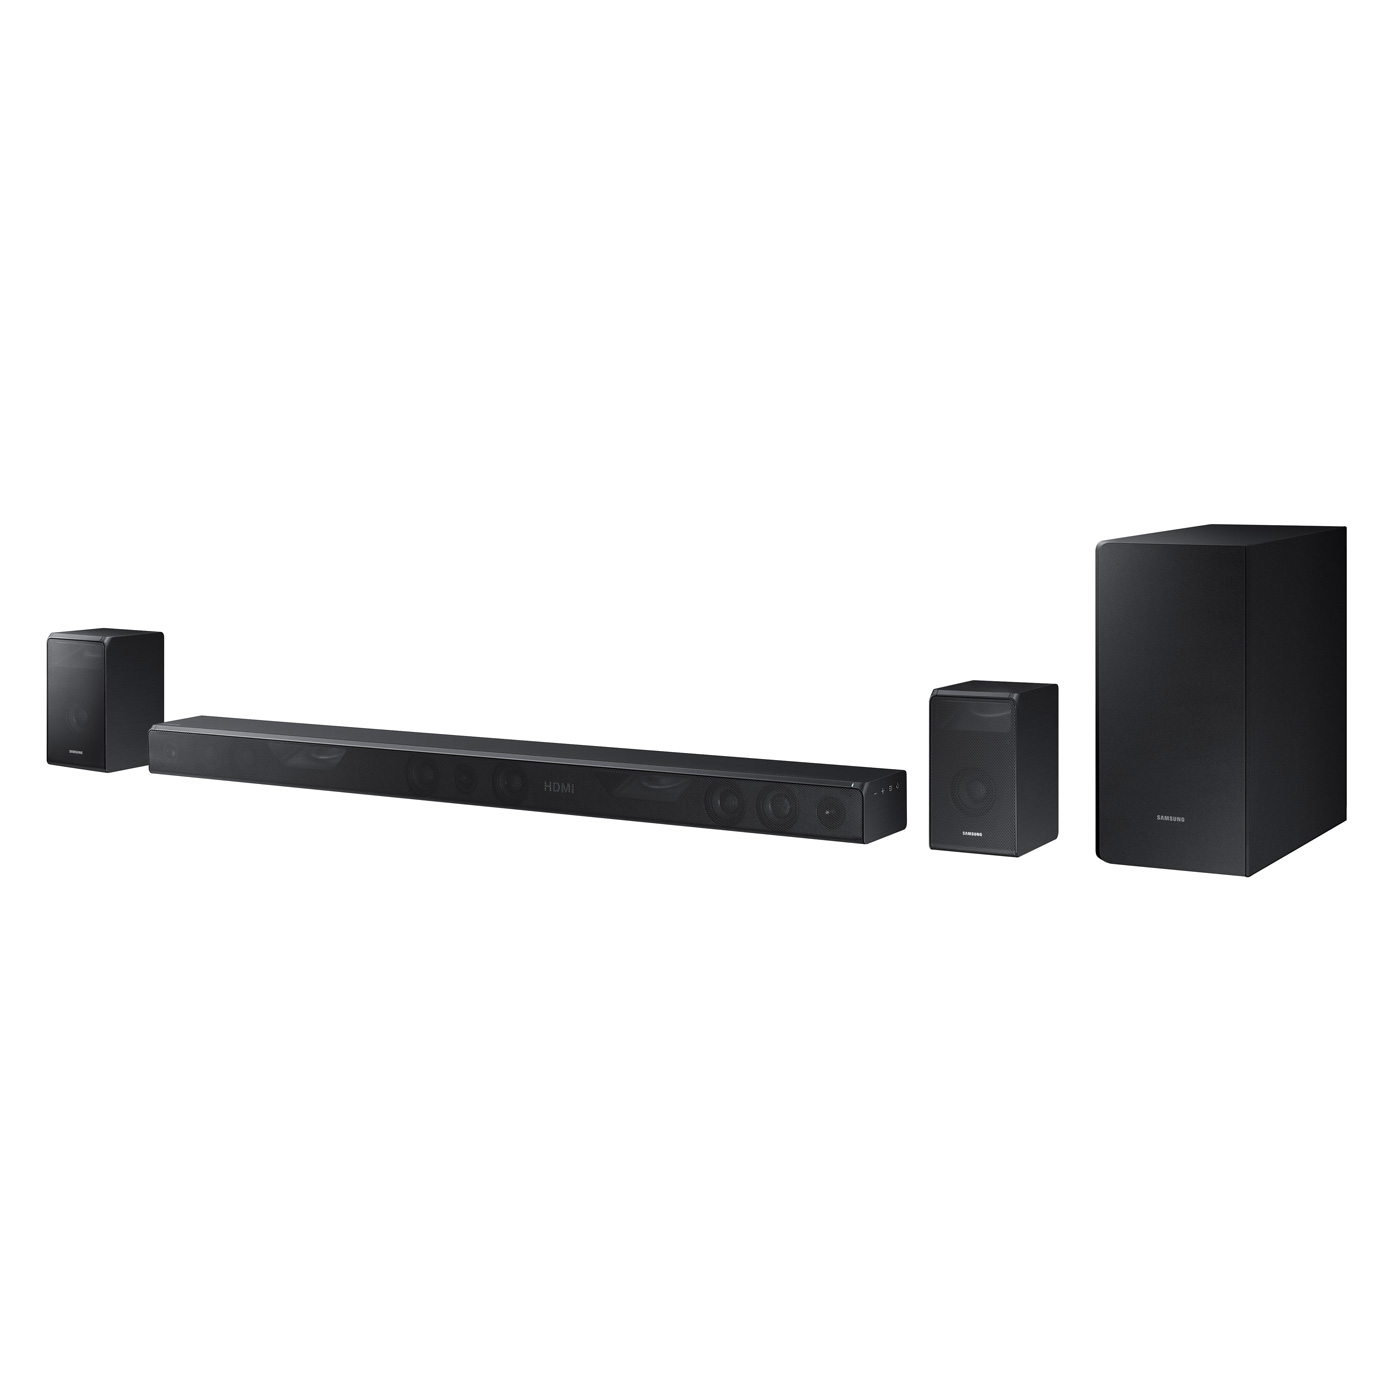 Samsung UBDK8500 4K Blu-ray Player w/ HWK950 5.1.4 Channel Soundbar ...